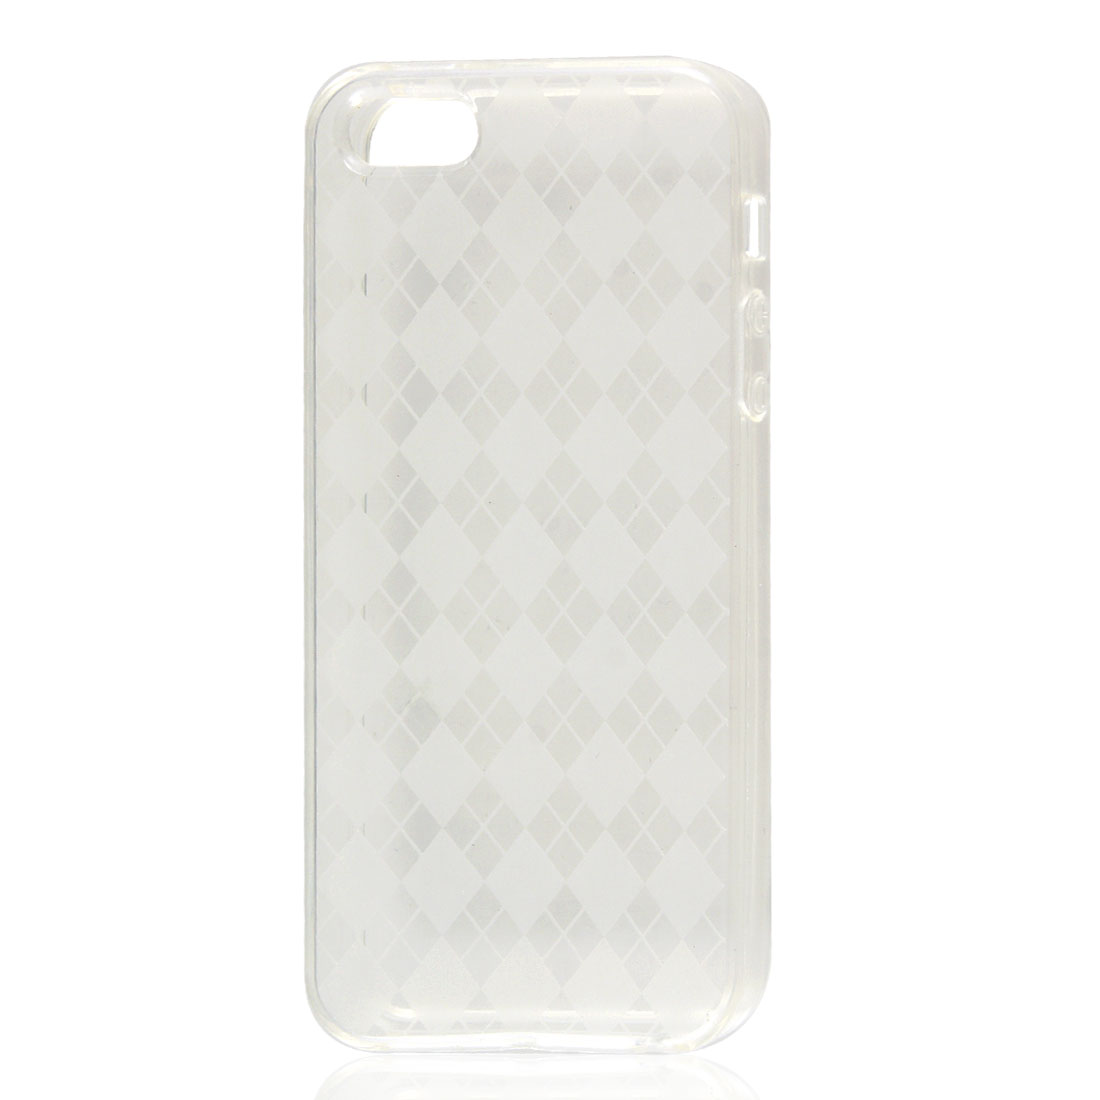 Clear White Argyle Pattern Soft Plastic TPU Case Cover for iPhone 5 5G